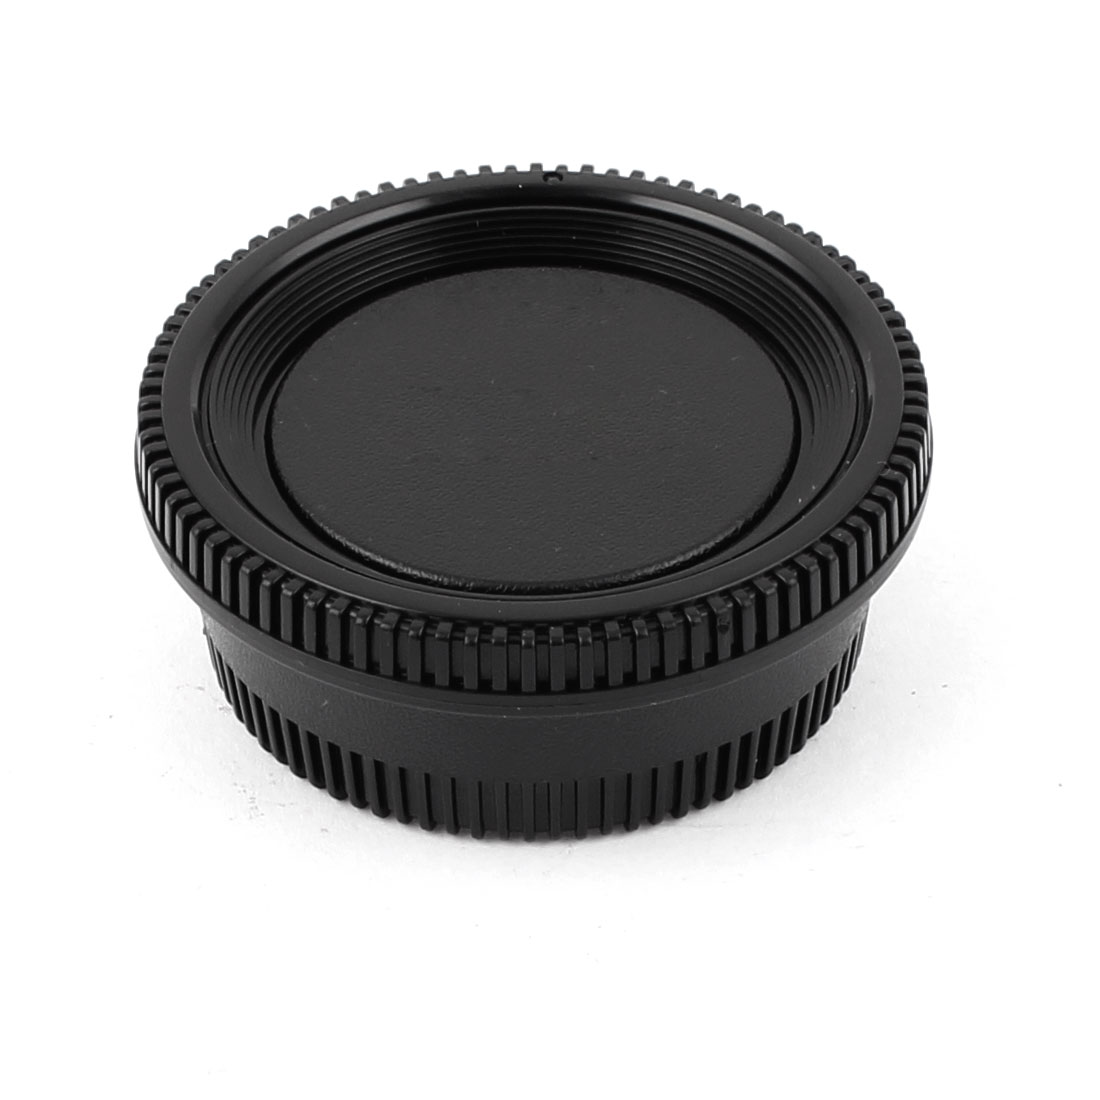 Black Plastic Camera Body Cover + Rear Lens Cap for Nikon Digital SLR DSLR